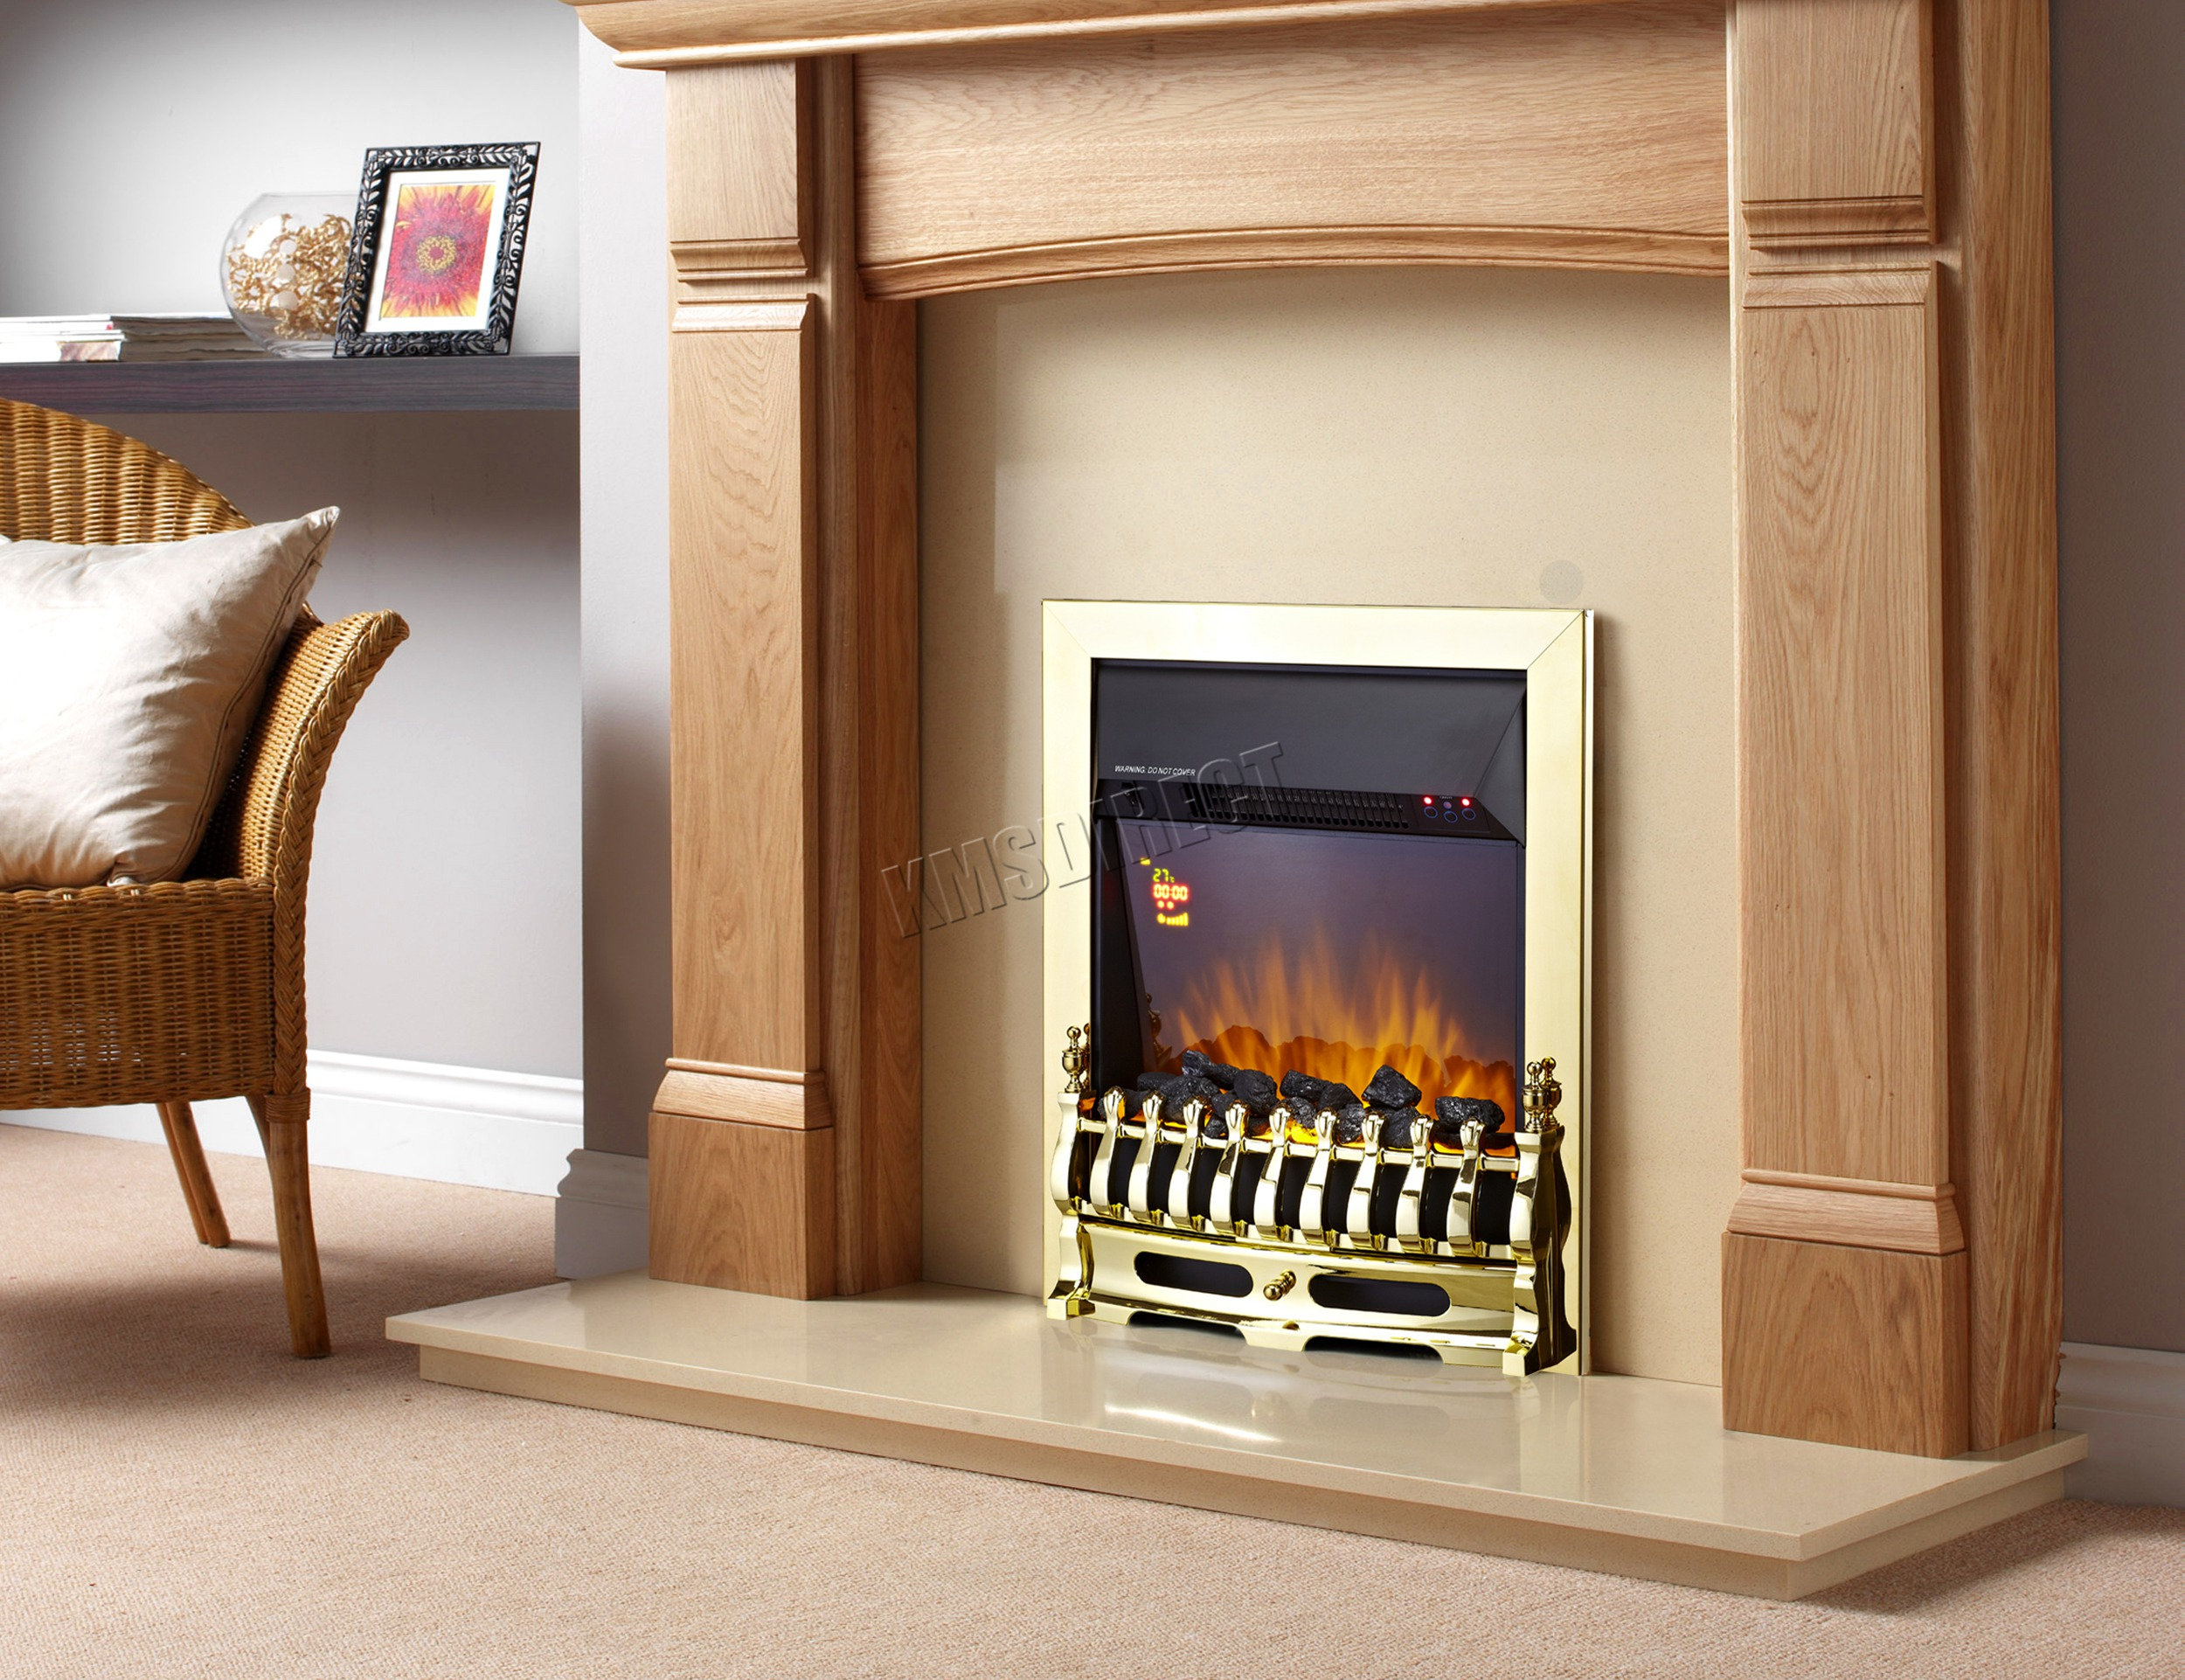 Fireplace Insert Repair Near Me Best Of Details About Spare Repair Foxhunter Electric Insert Fireplace Log Heater Flame 2kw Efi01